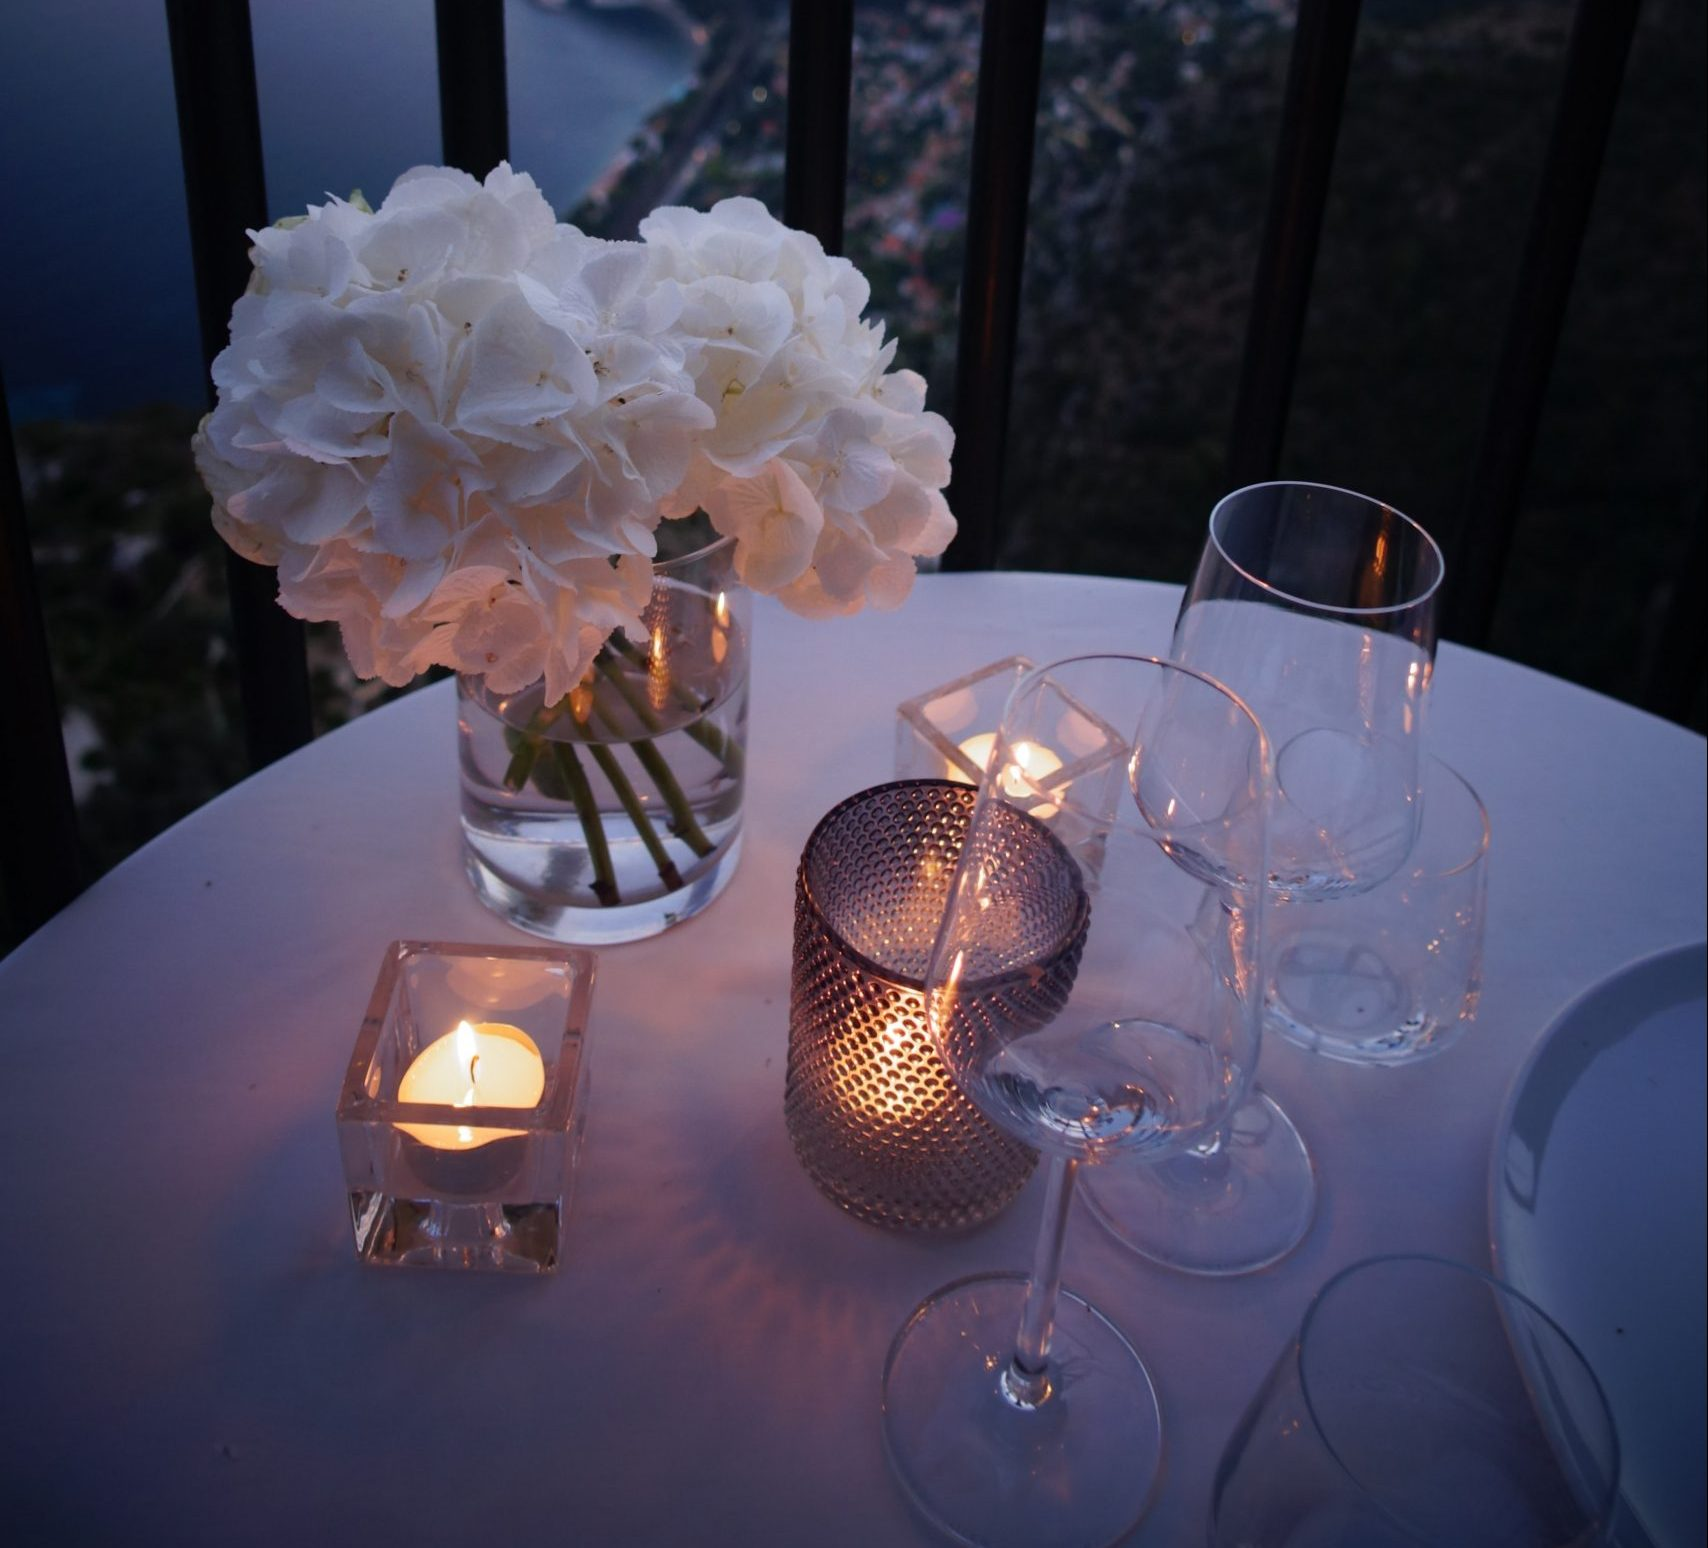 You are currently viewing At-Home Date Night Ideas Under Lockdown